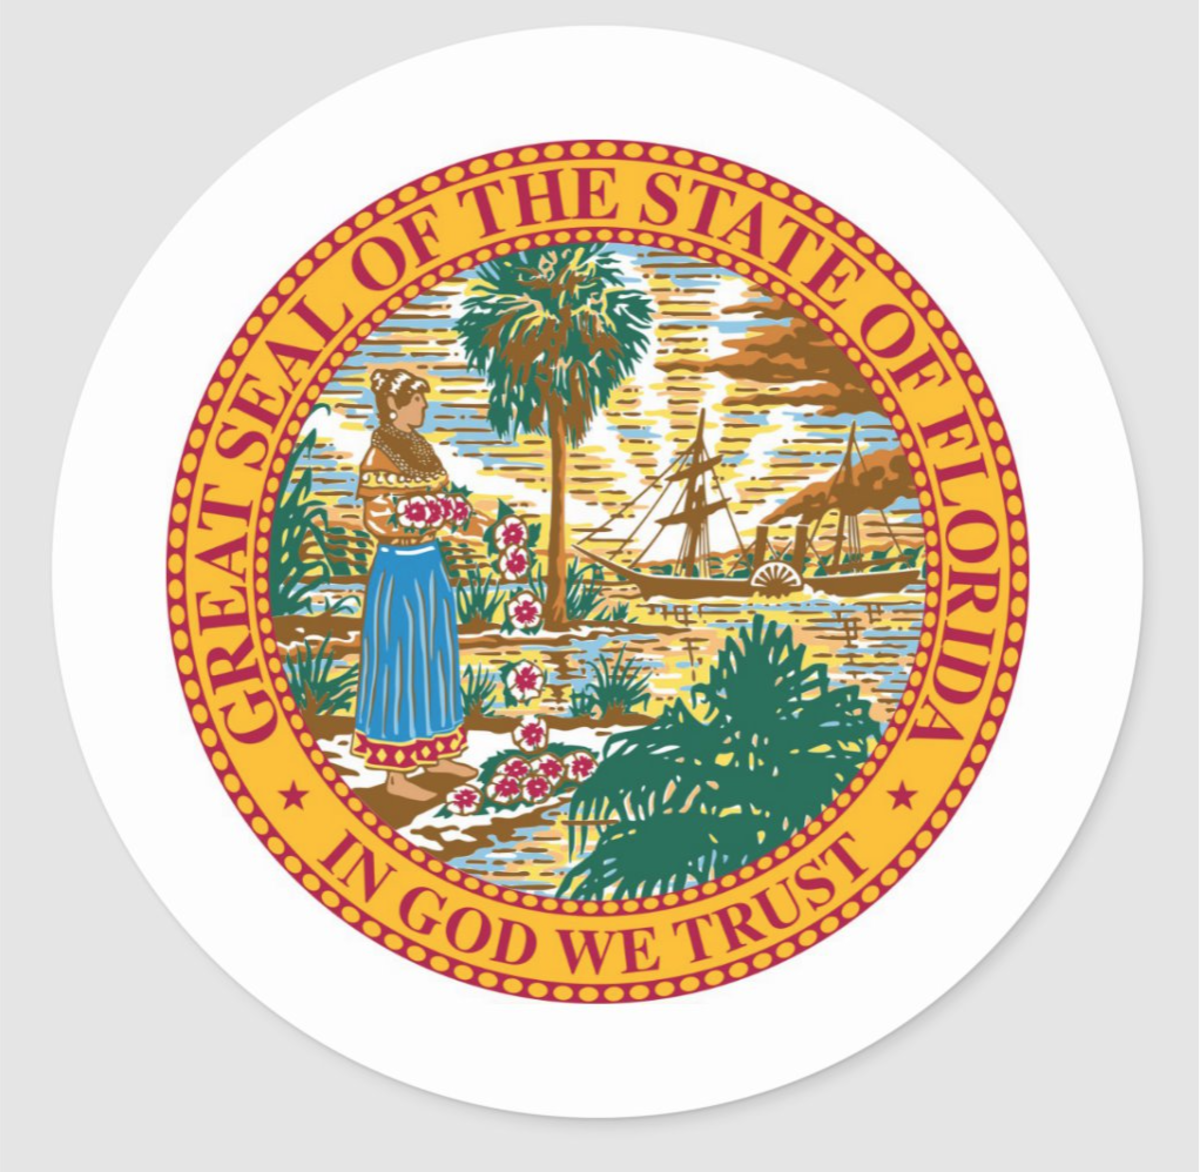 """In 2006 """"In God We Trust"""" was adopted as the official motto of the State of Florida"""